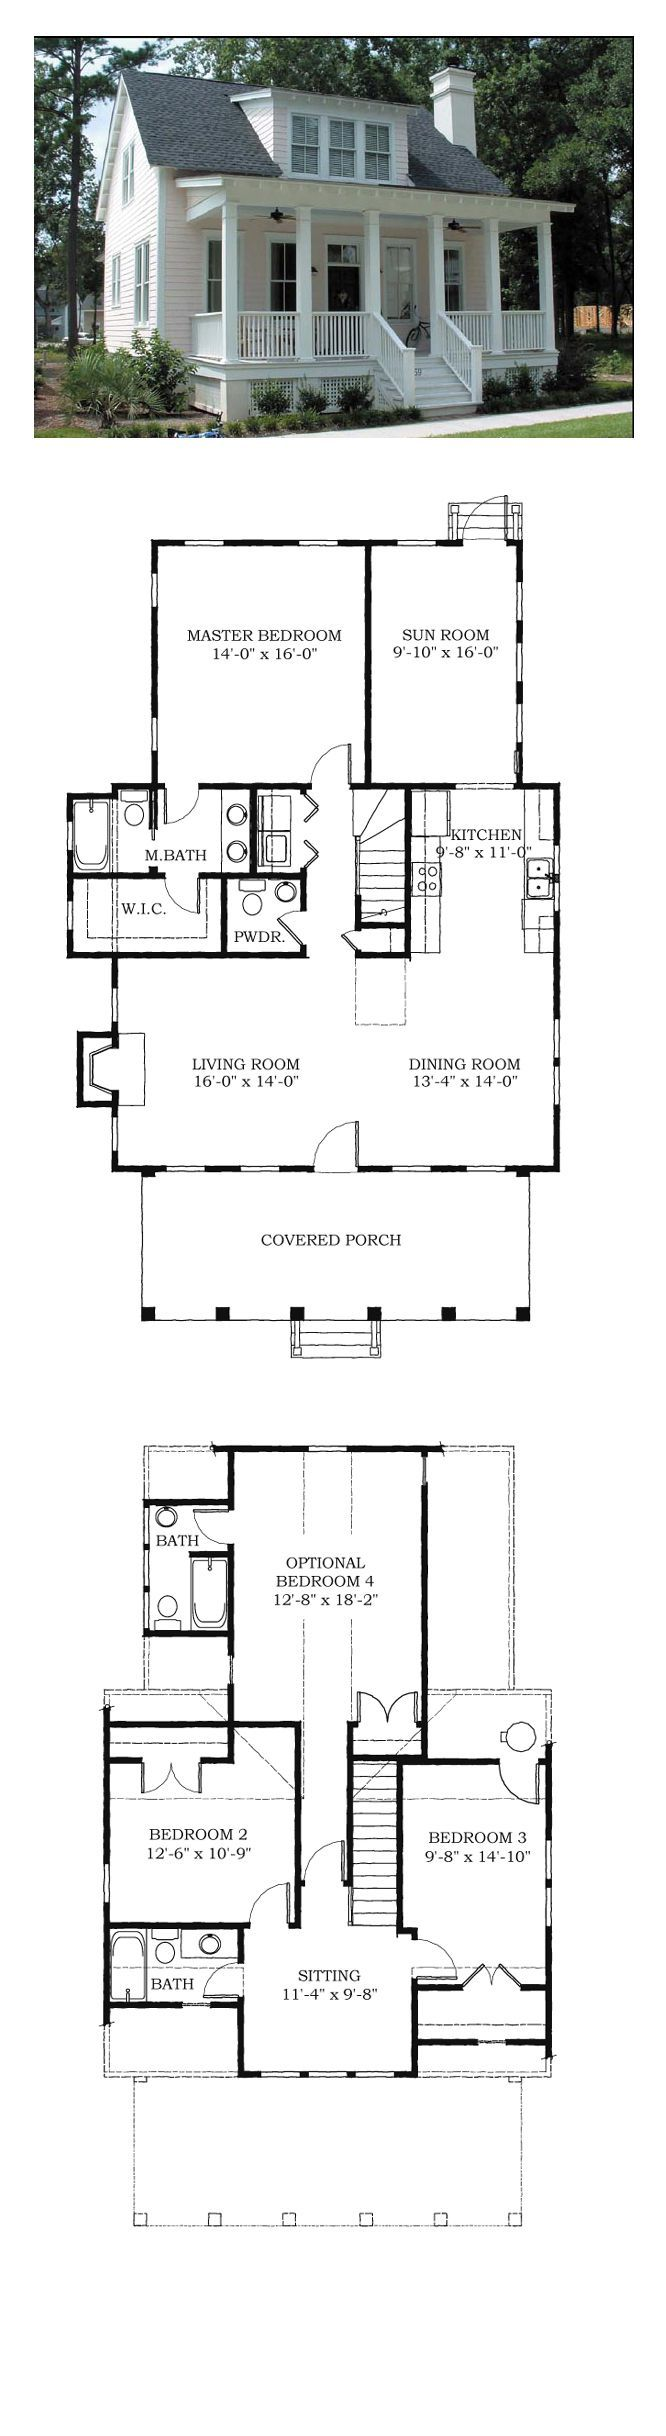 5 bedroom 3 bathroom house plans - Cool House Plan Id Chp 38703 Total Living Area 1783 Sq